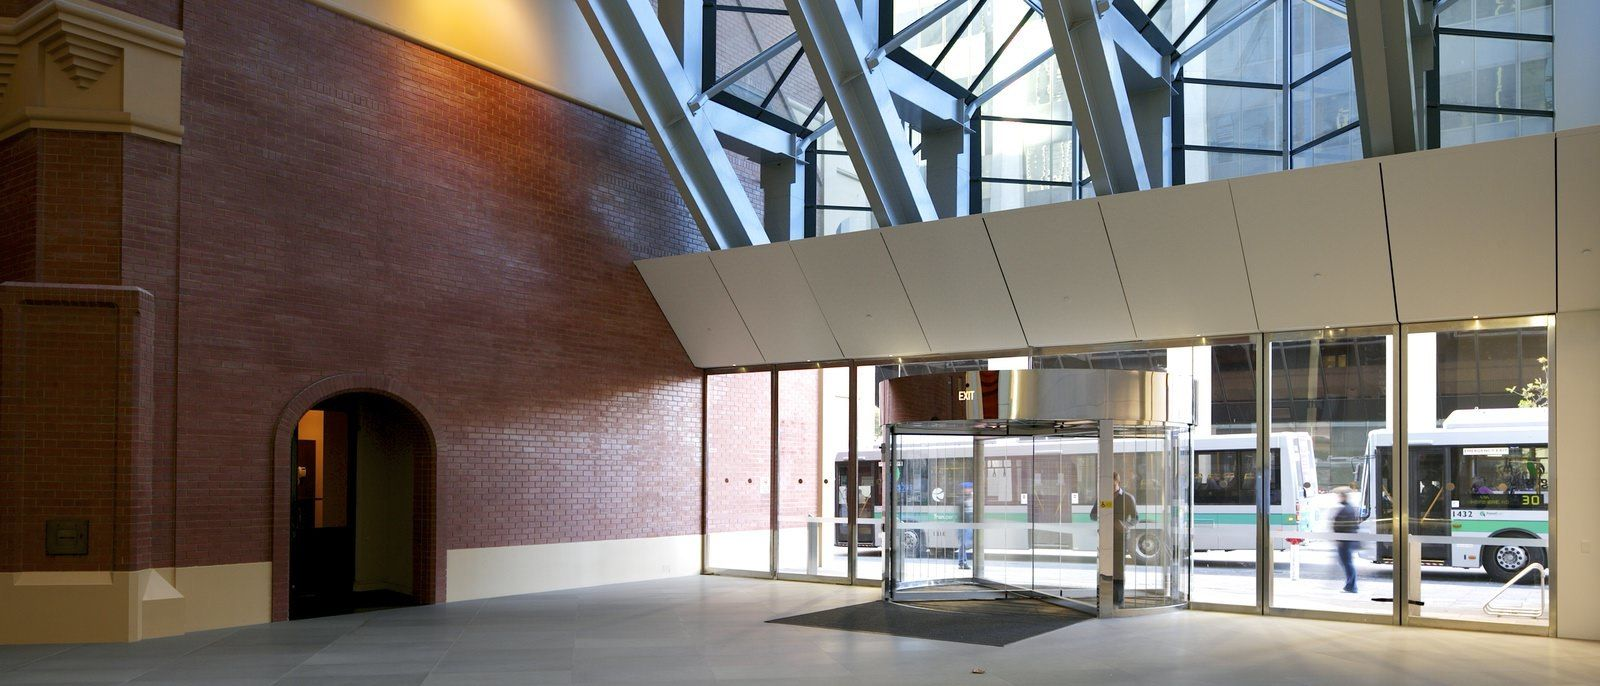 Indoor lobby of a large building with walls that are lined with bricks and huge panels of glass.